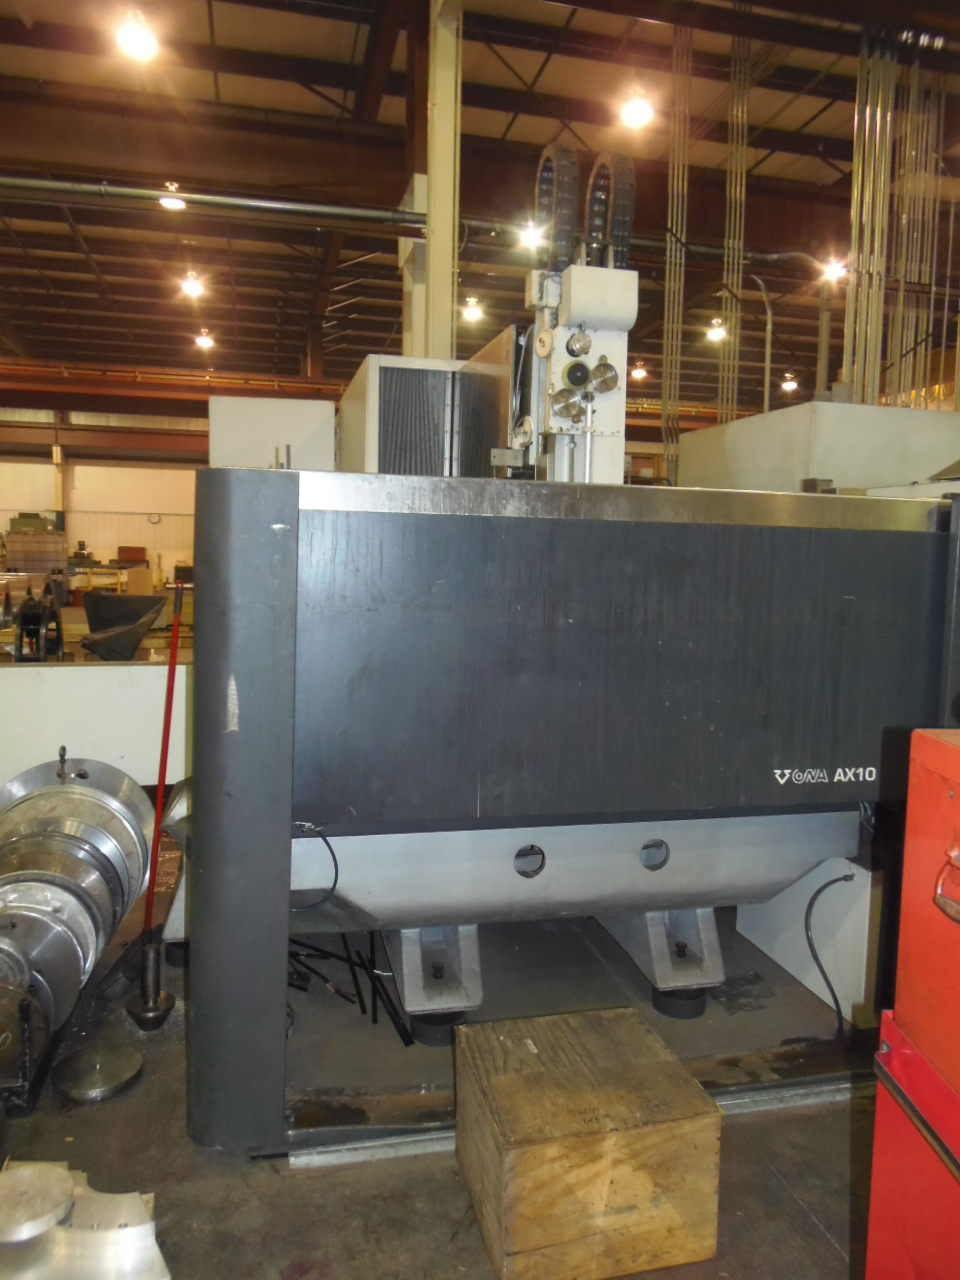 "ONA EDM MODEL AX10, TRAVELS 59.1 X 39.4 X 27.5"", 78.7 IPM TRAVERSE, TAPER, UV AXIS, 76 X 63 X 27.5 WORKPIECE, 22,000 LBS WEIGHT CAP., NEW 2008"